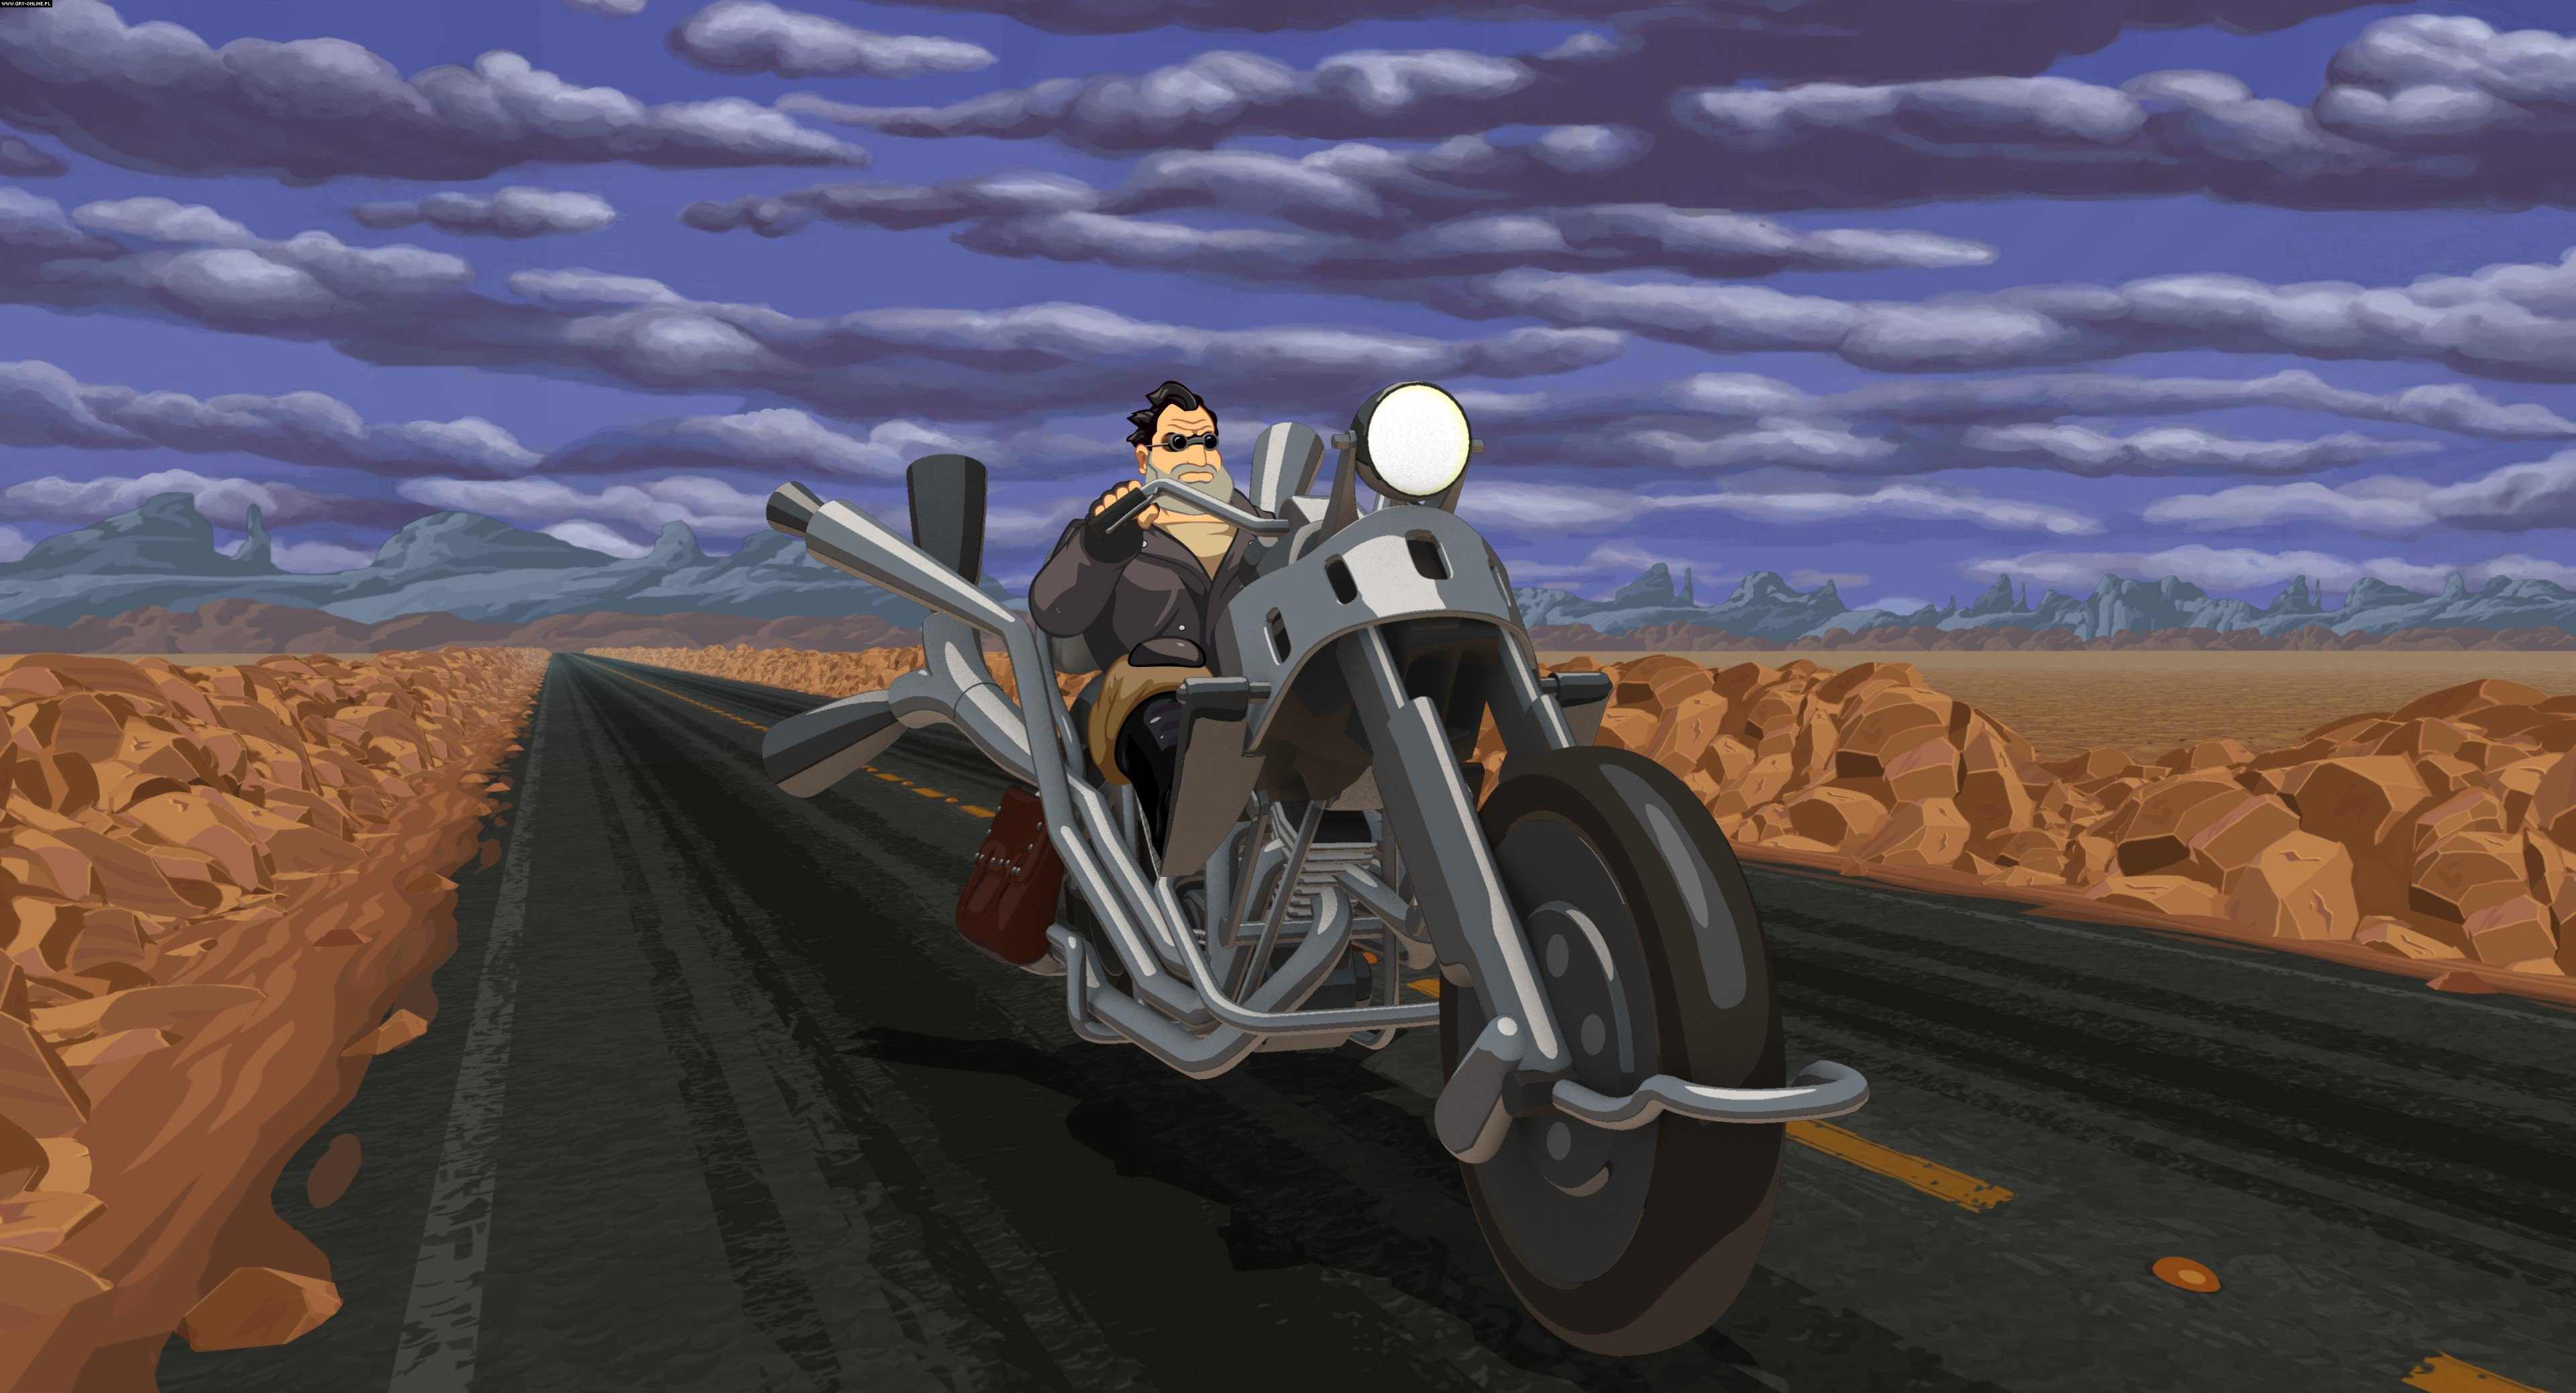 Full Throttle Remastered PC, PSV, PS4 Games Image 2/6, Double Fine Productions, Inc.